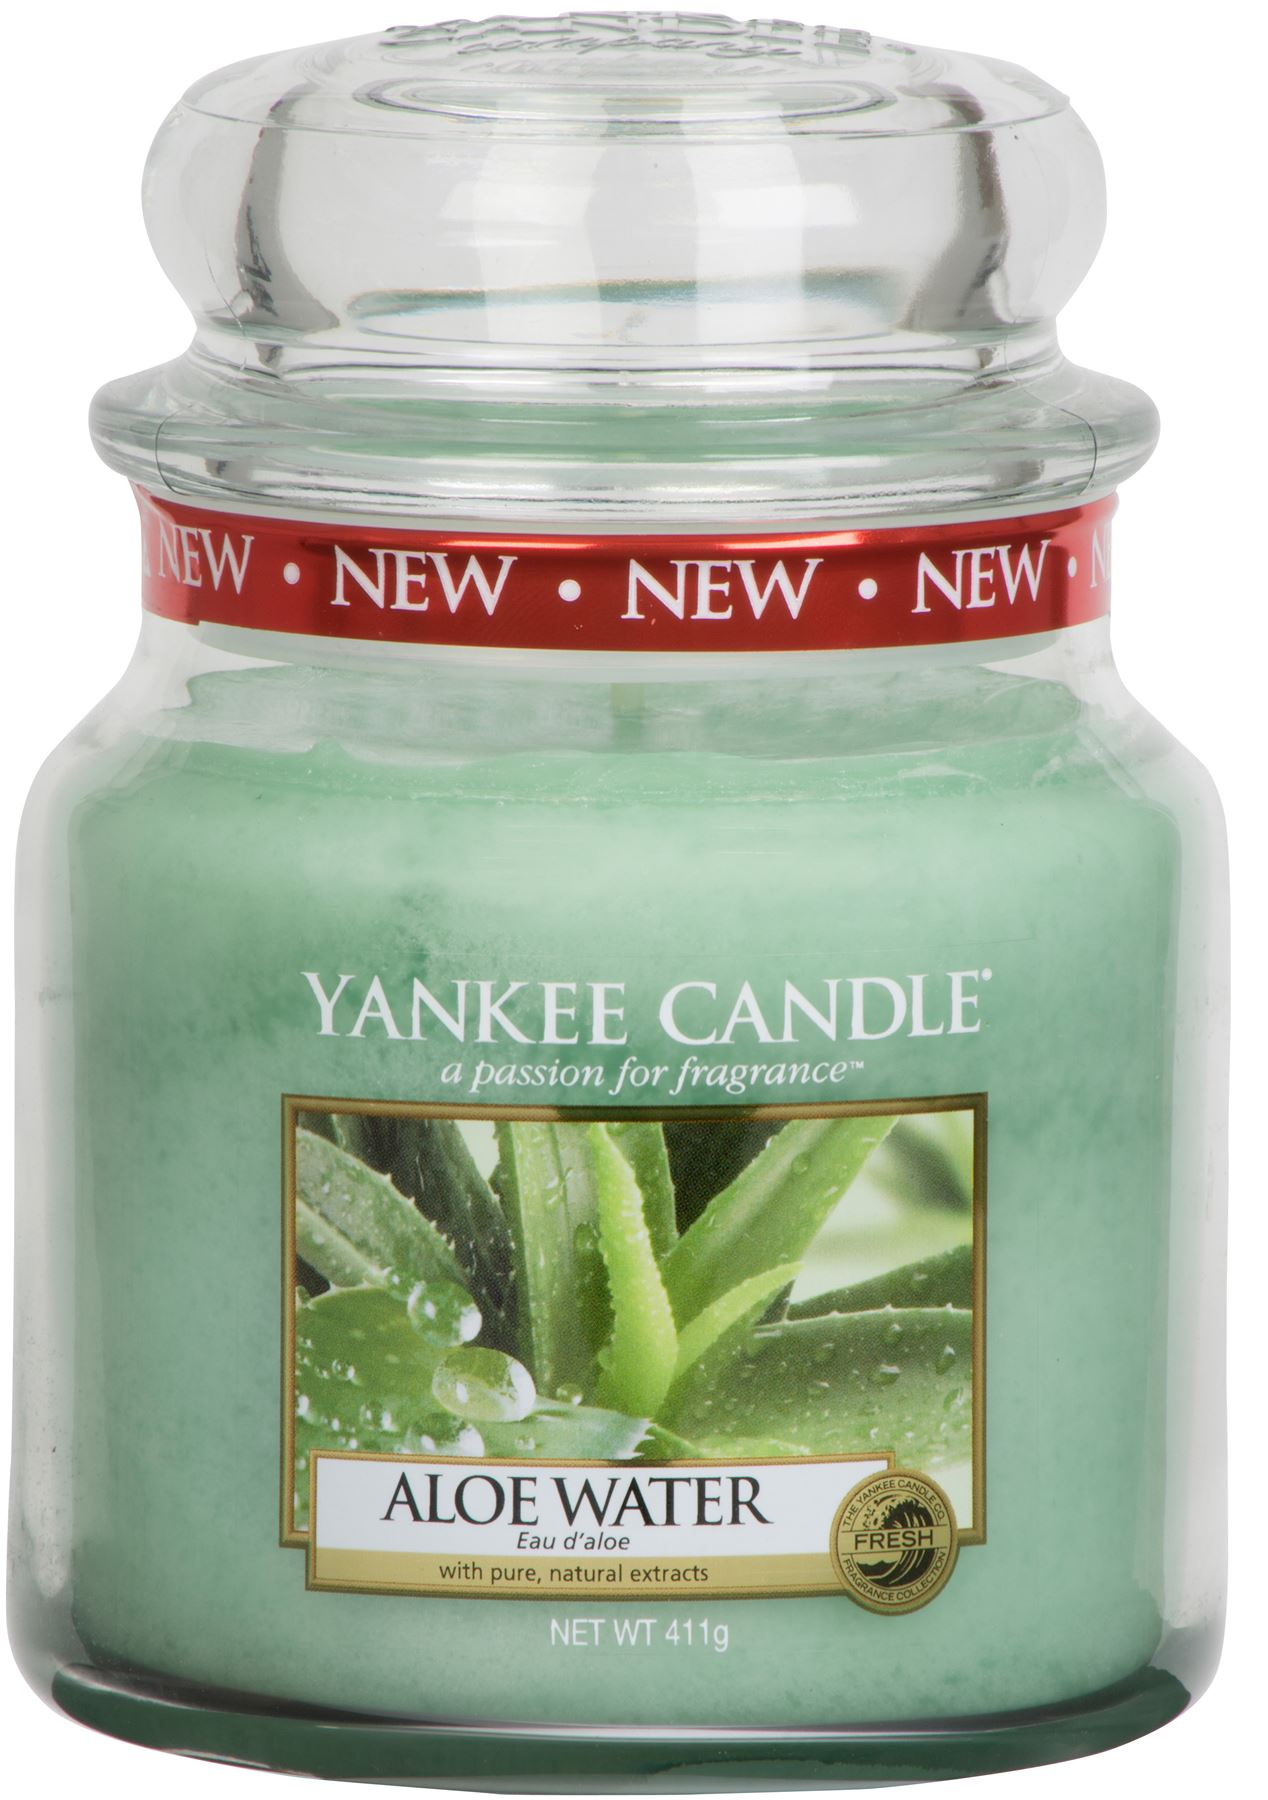 Yankee-Candle-Medium-Jars-Various-Fragrances-Including-New-Ranges